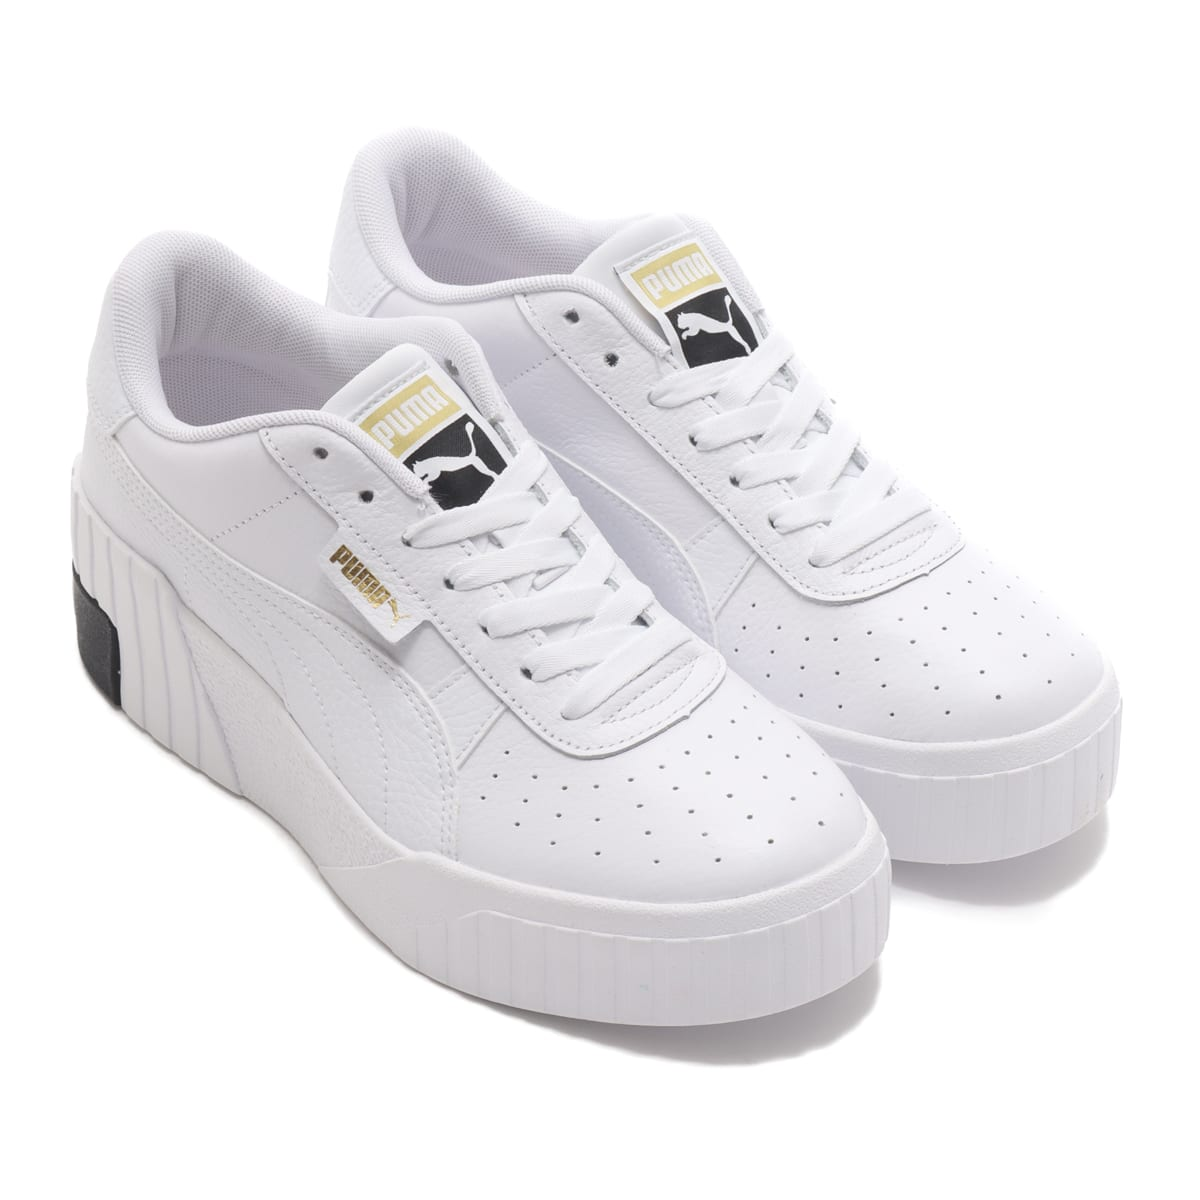 PUMA CALI WEDGE WNS WHITE/BLACK 20FA-S_photo_large